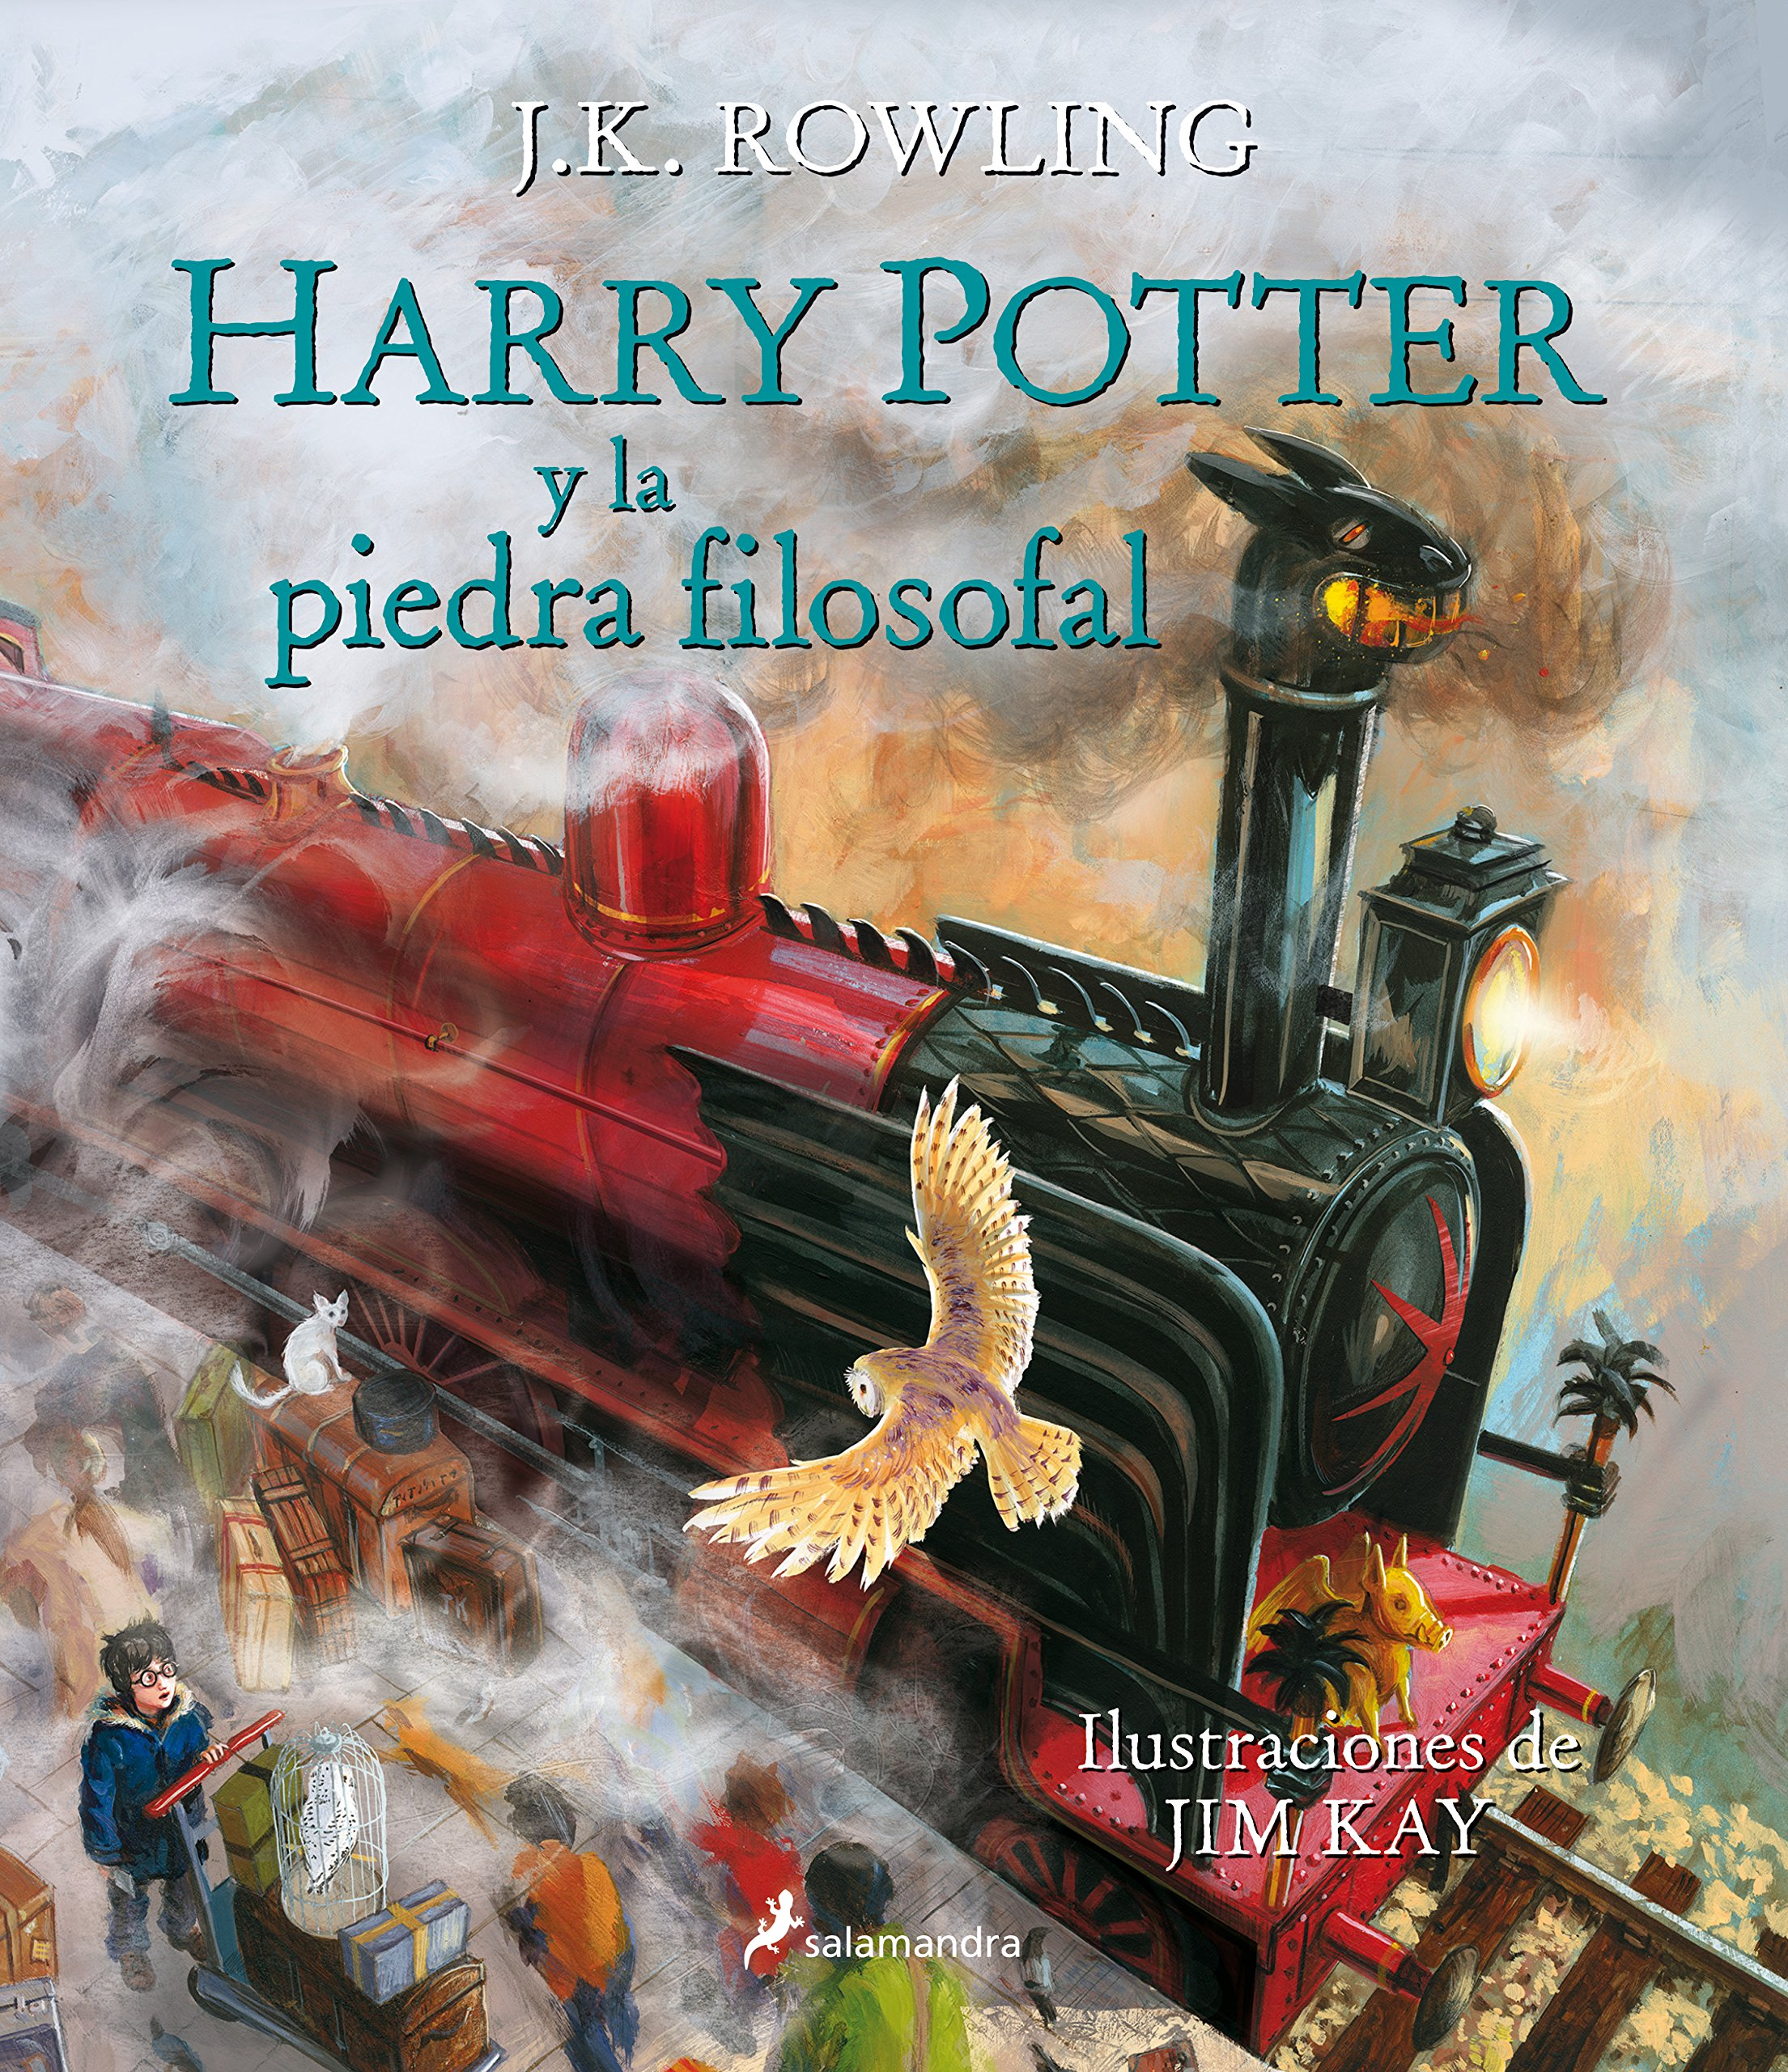 Harry Potter y la piedra filosofal (Harry Potter (Ilustrado), Band 1)